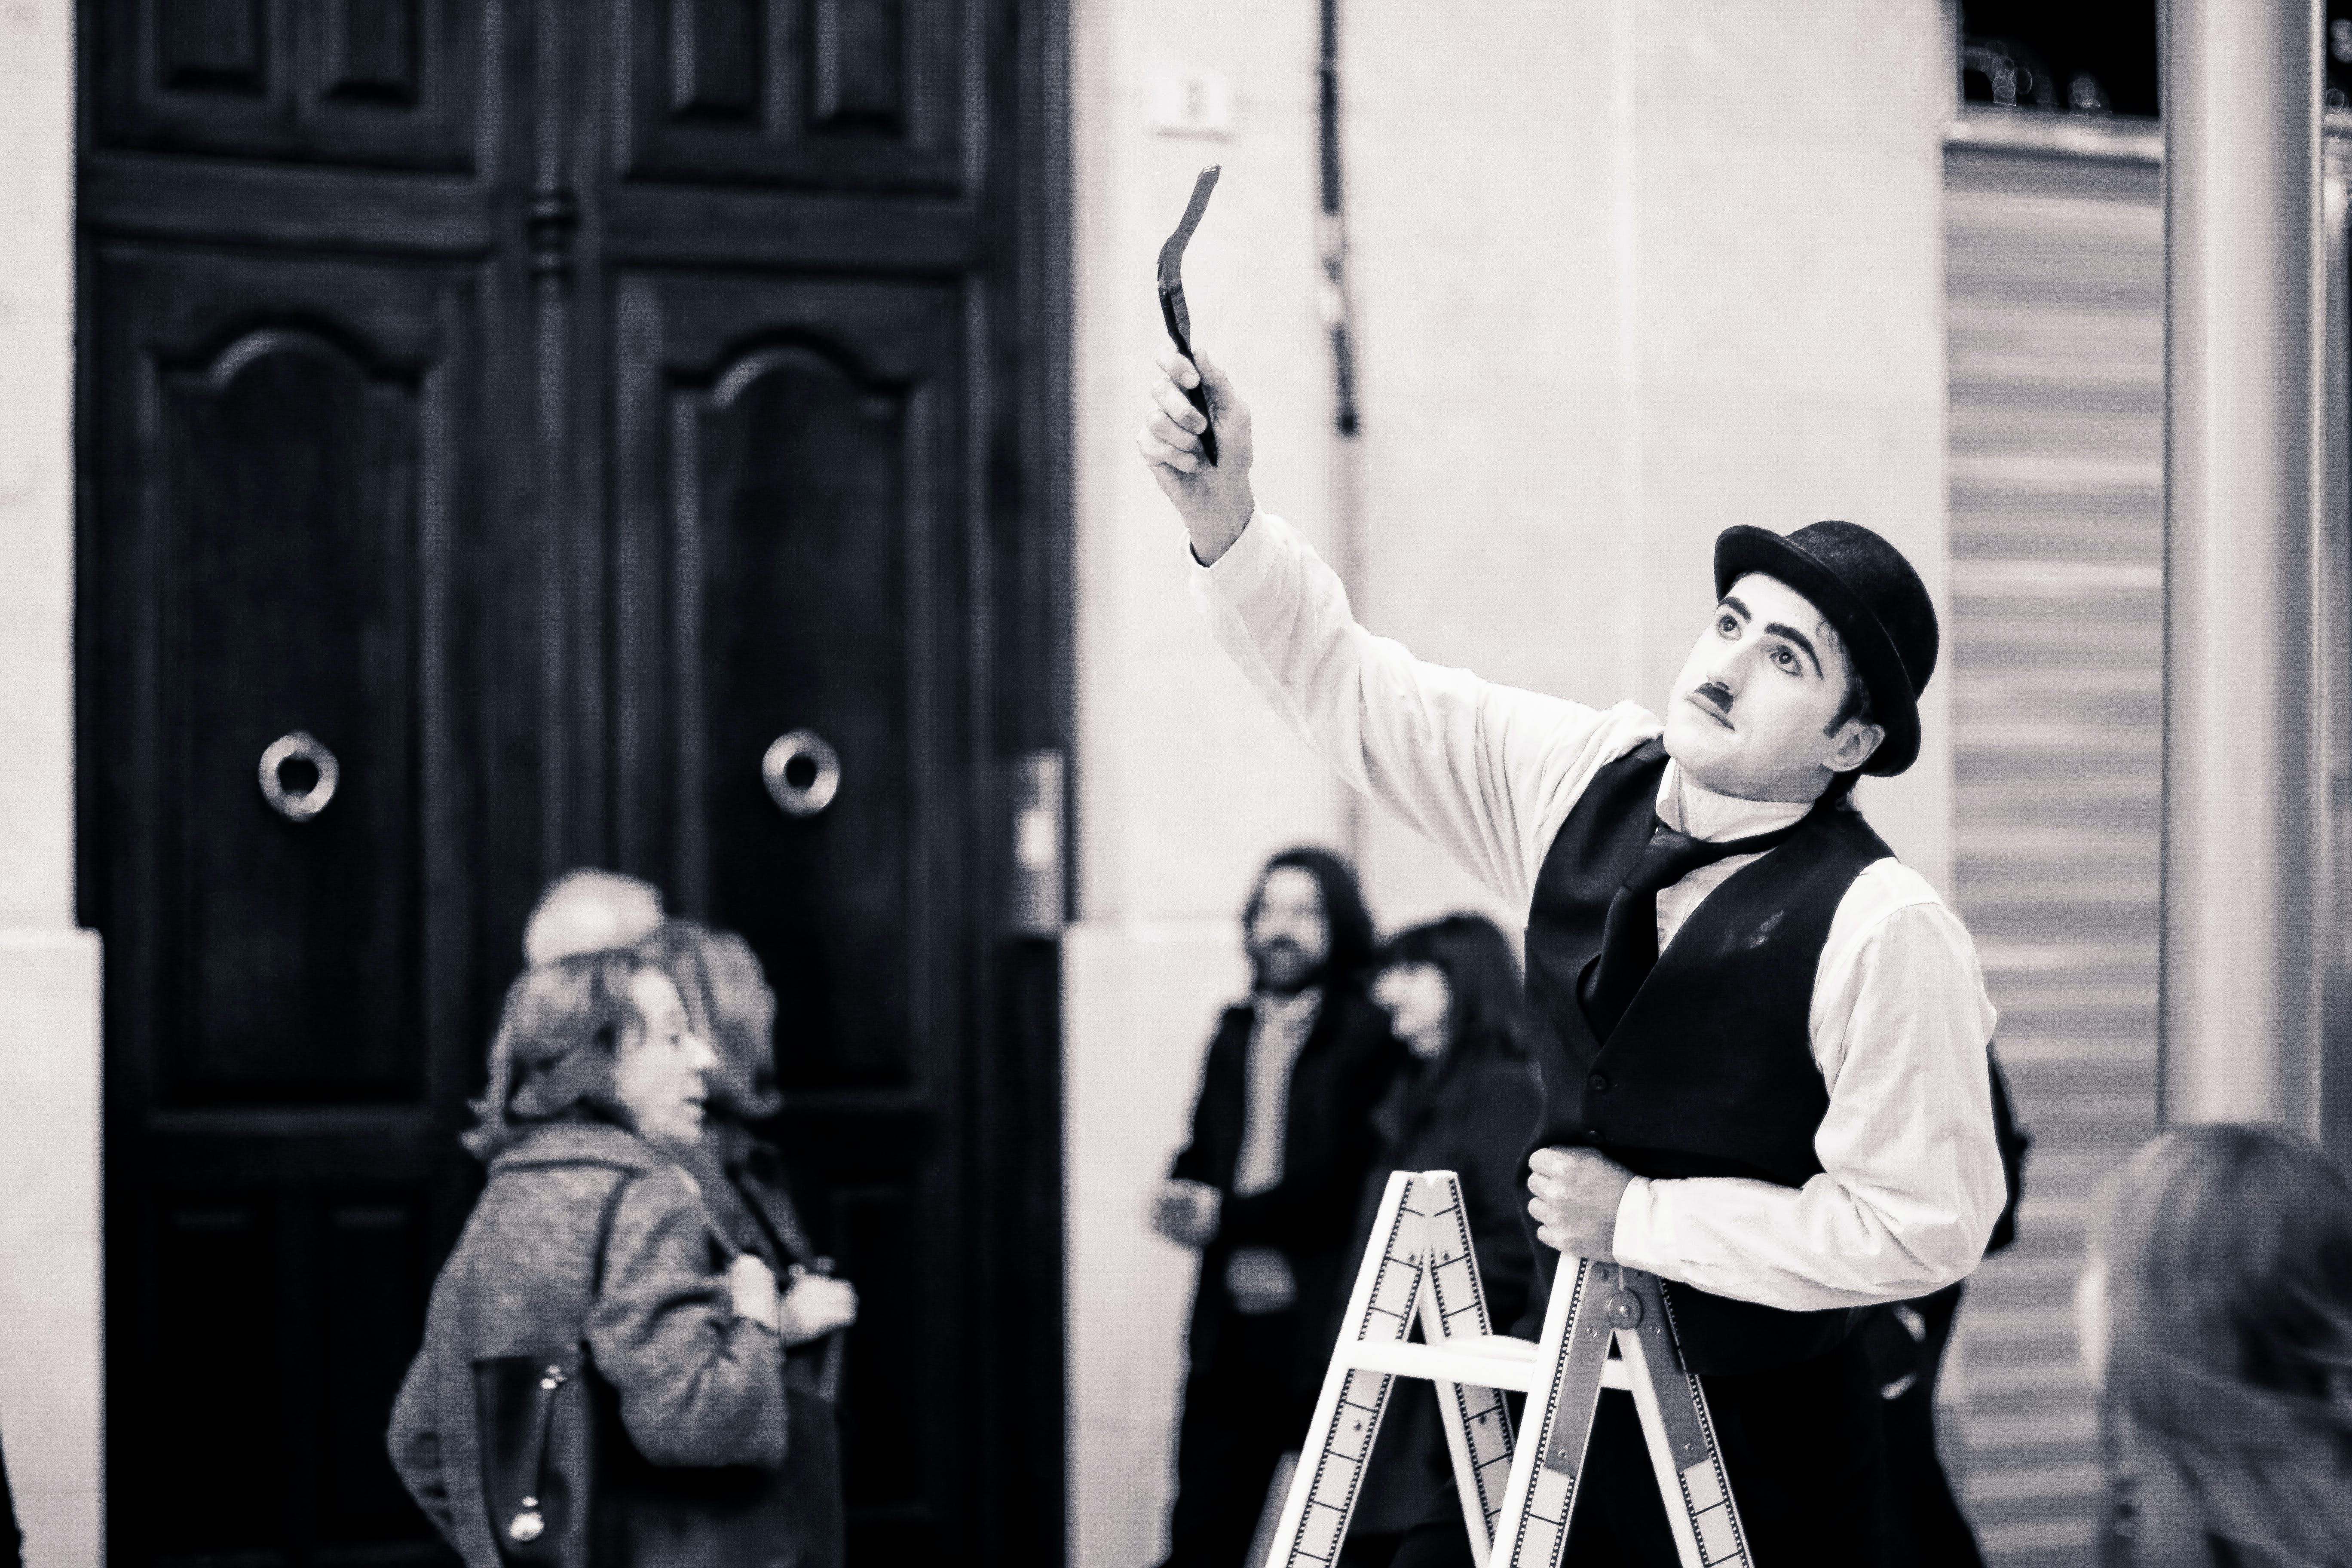 Charlie Chaplin on Top of Ladder